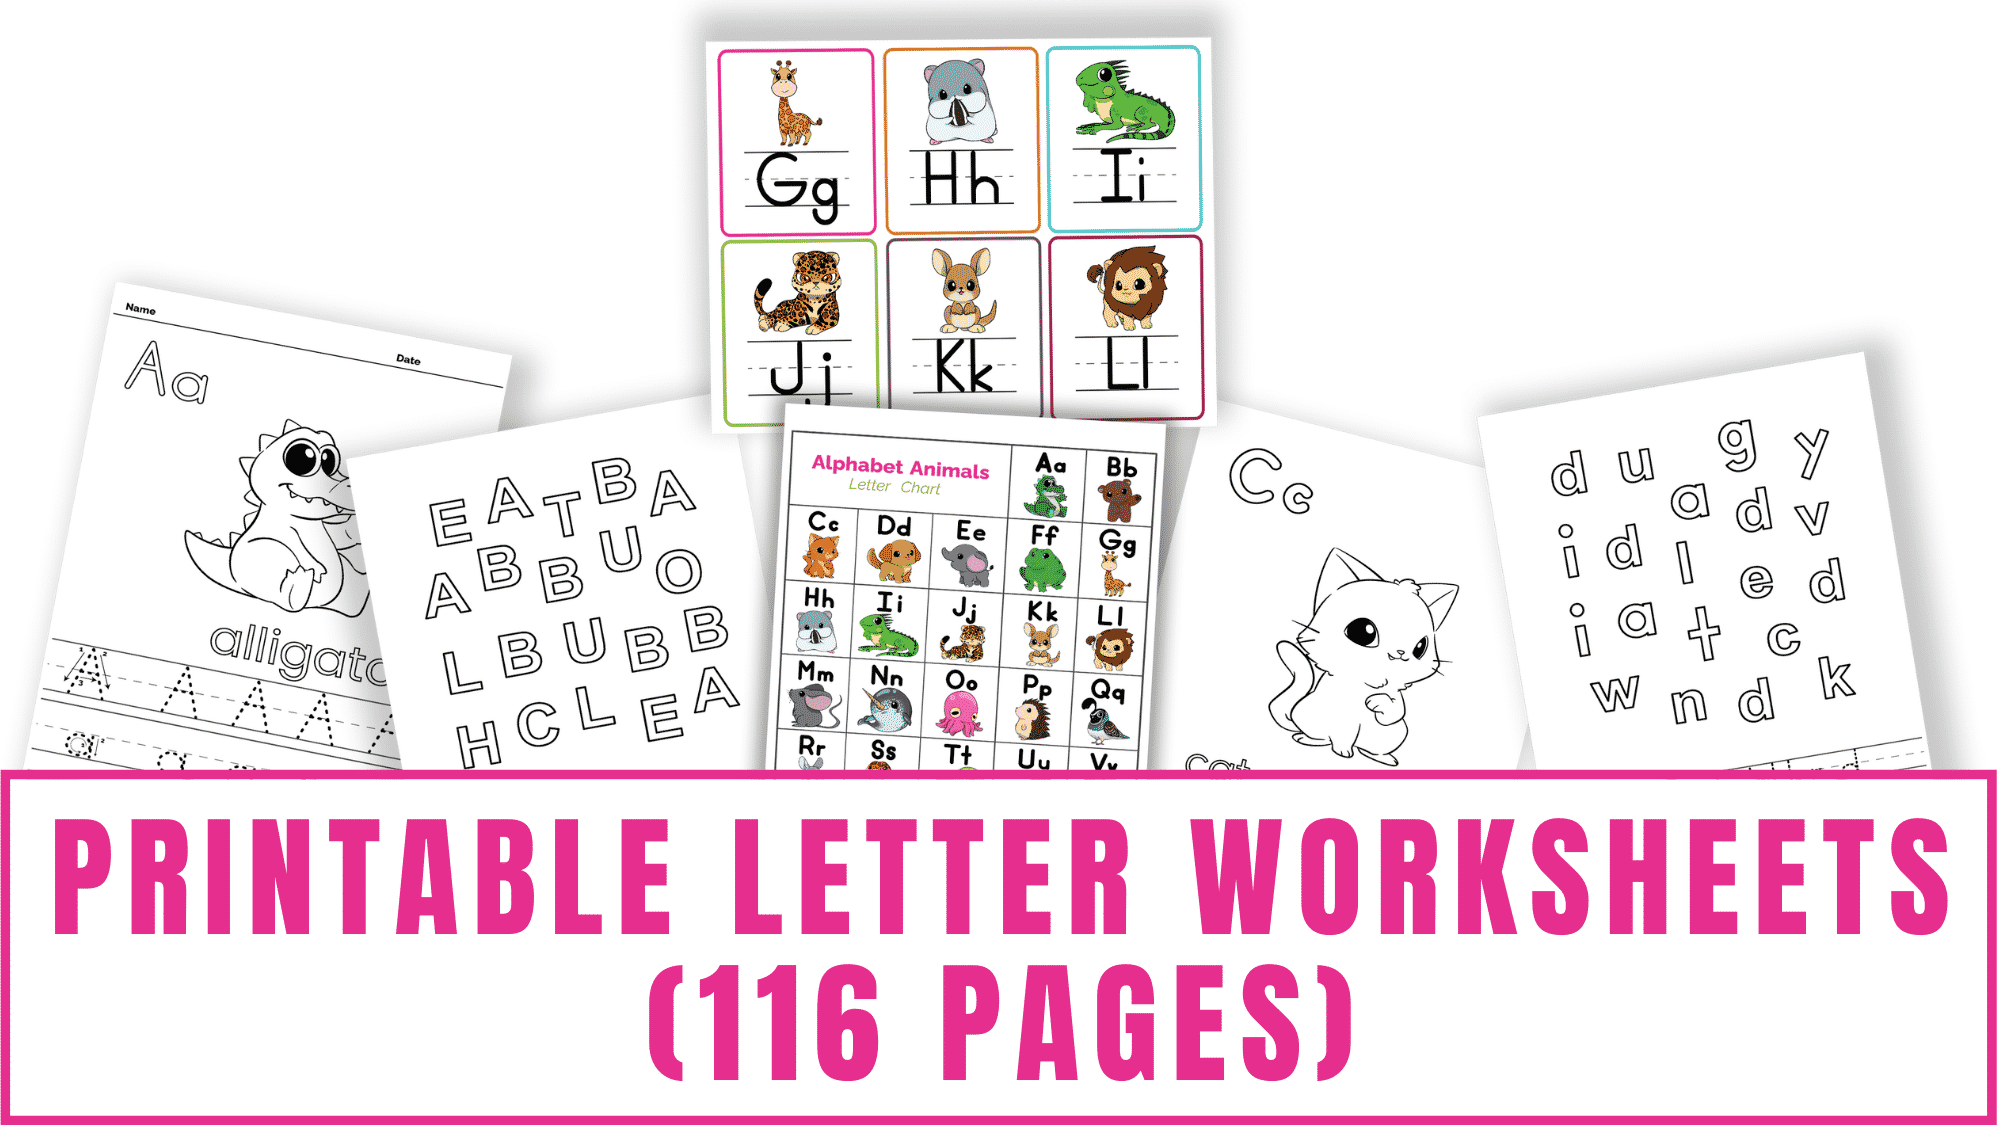 This huge bundle of 116- pages of printable letter worksheets will help your preschool or kindergarten age student learn letter recognition, work on letter tracing, letter sounds, words that start with certain letters and more.